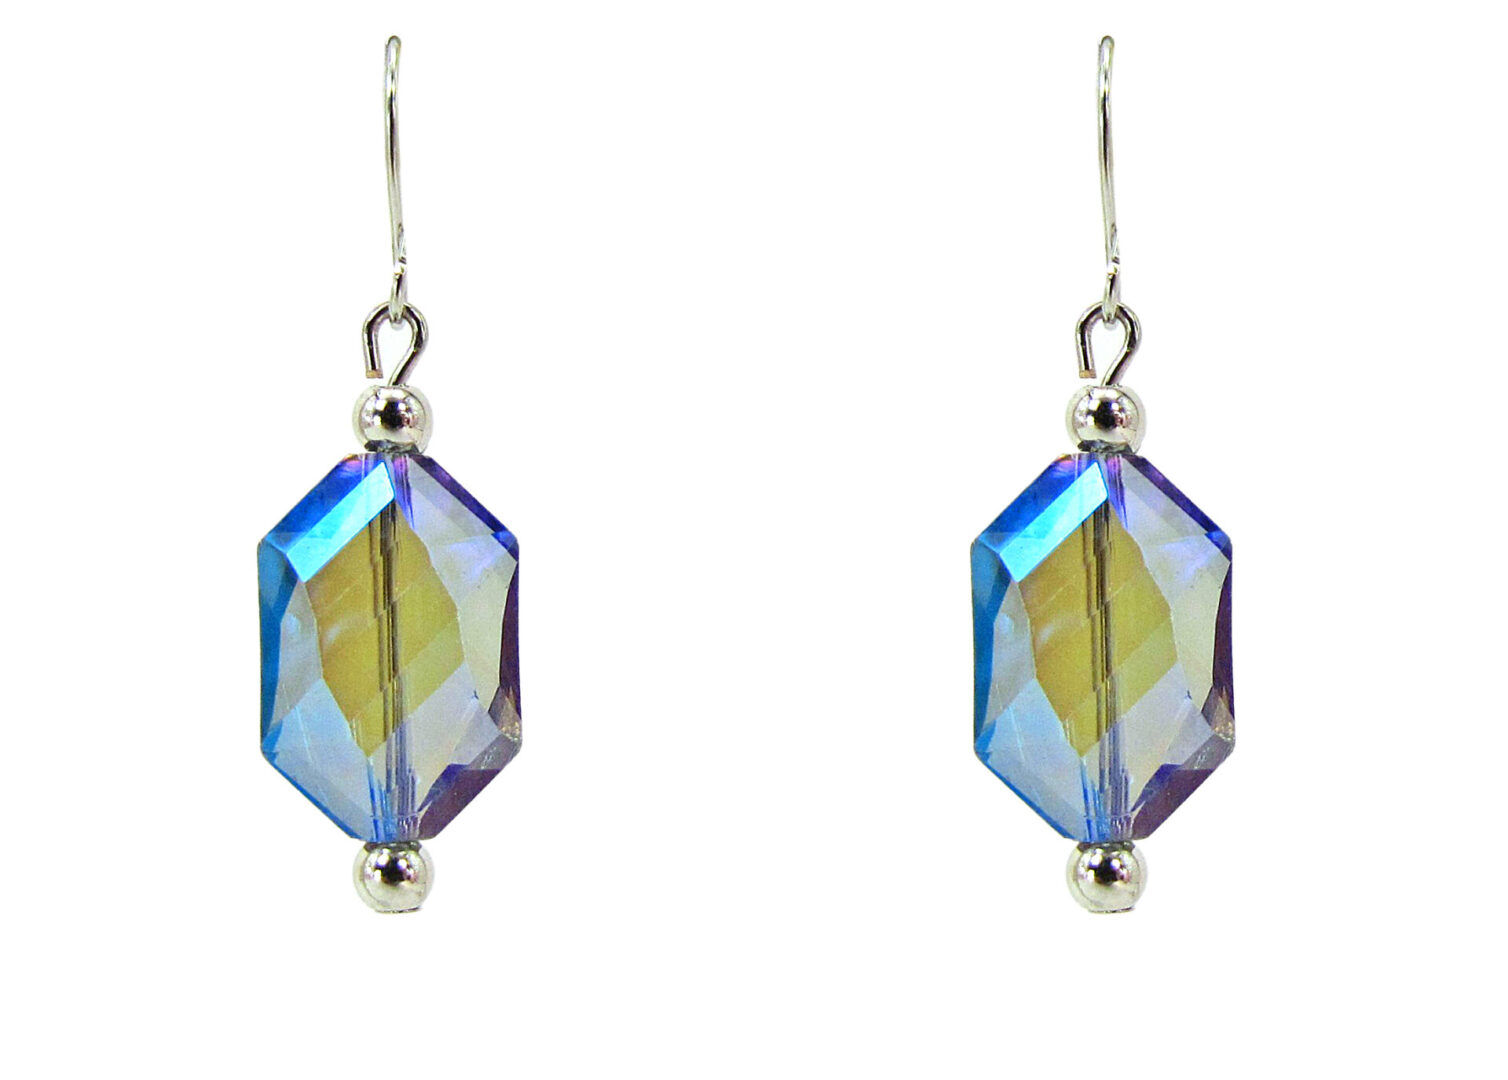 earrings with hexagonal blue crystals